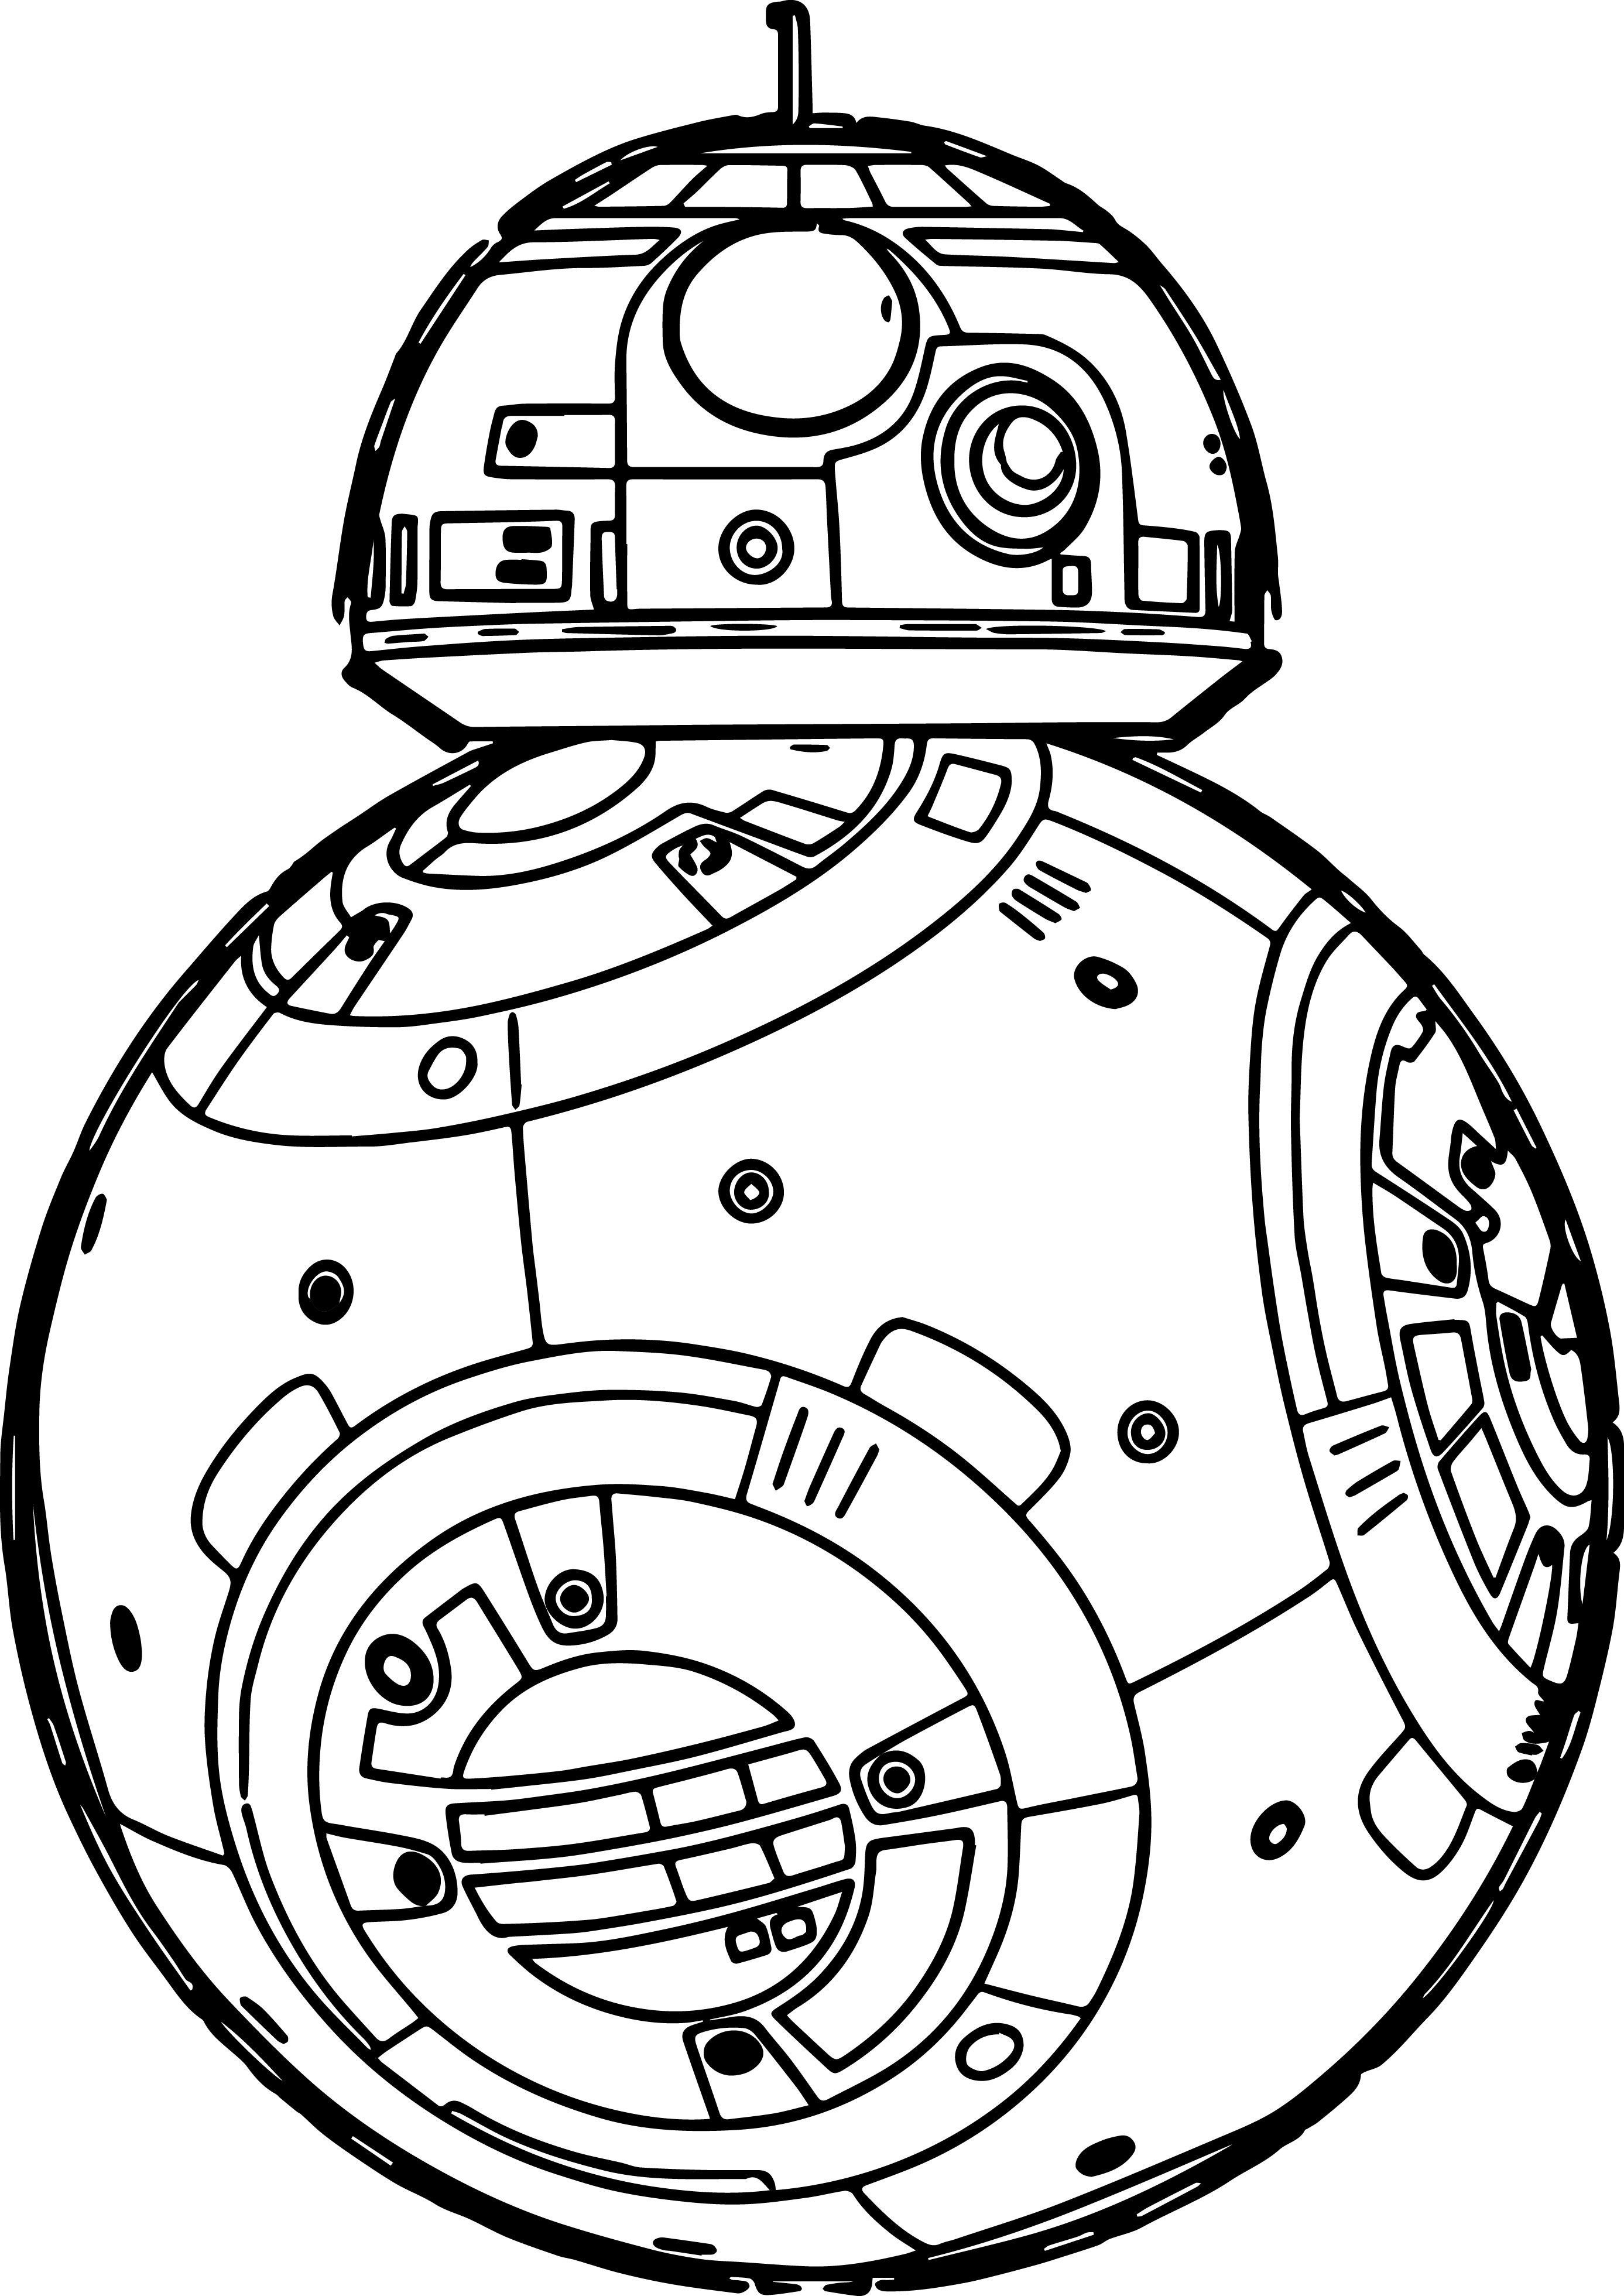 Stormtrooper Coloring Page Star Wars Stormtrooper Coloring Pages Printable For Stormtrooper